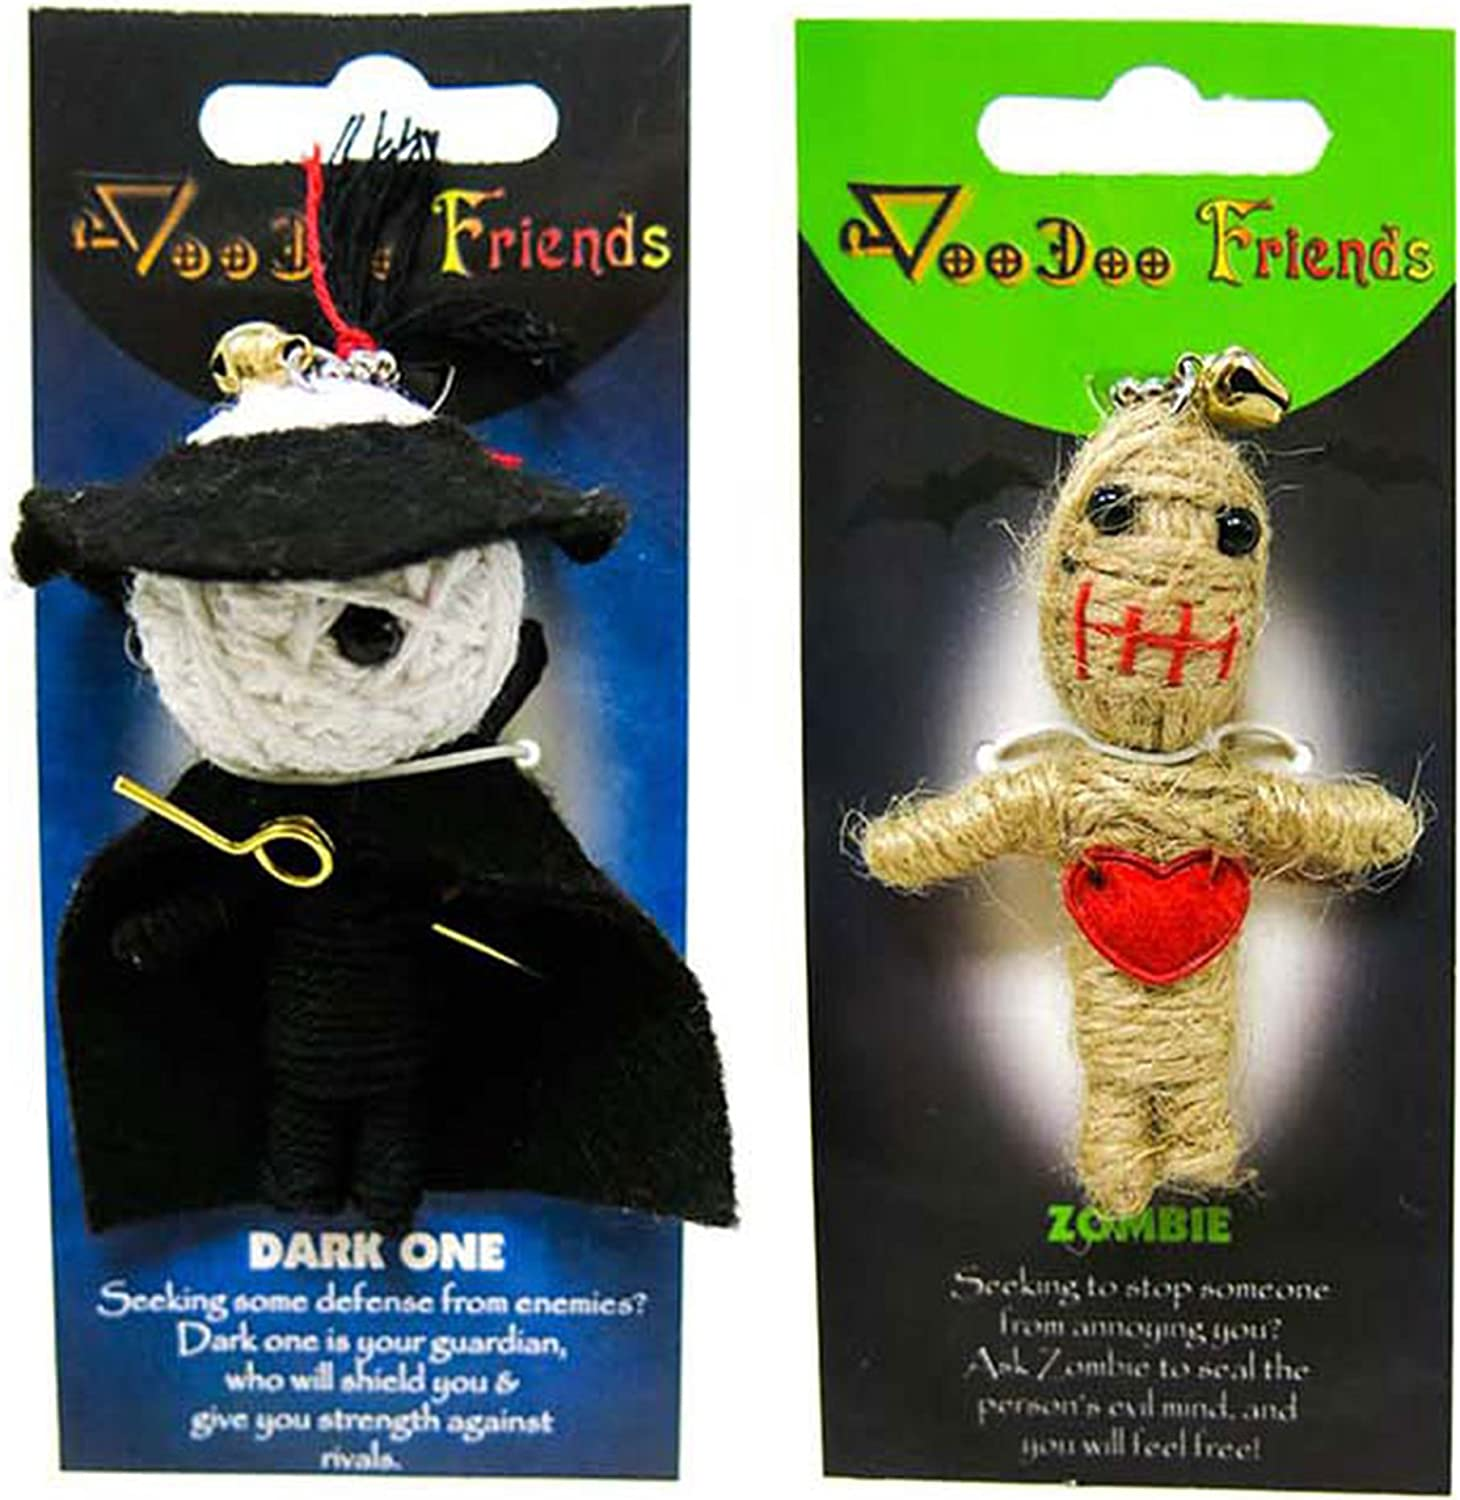 FROG SAC Voodoo Dolls Set of 2 - Yarn String Doll Great as Keychain, Charm for Purse, Backpacks, Office Accessories - Great Gifts (Dark One & Zombie)